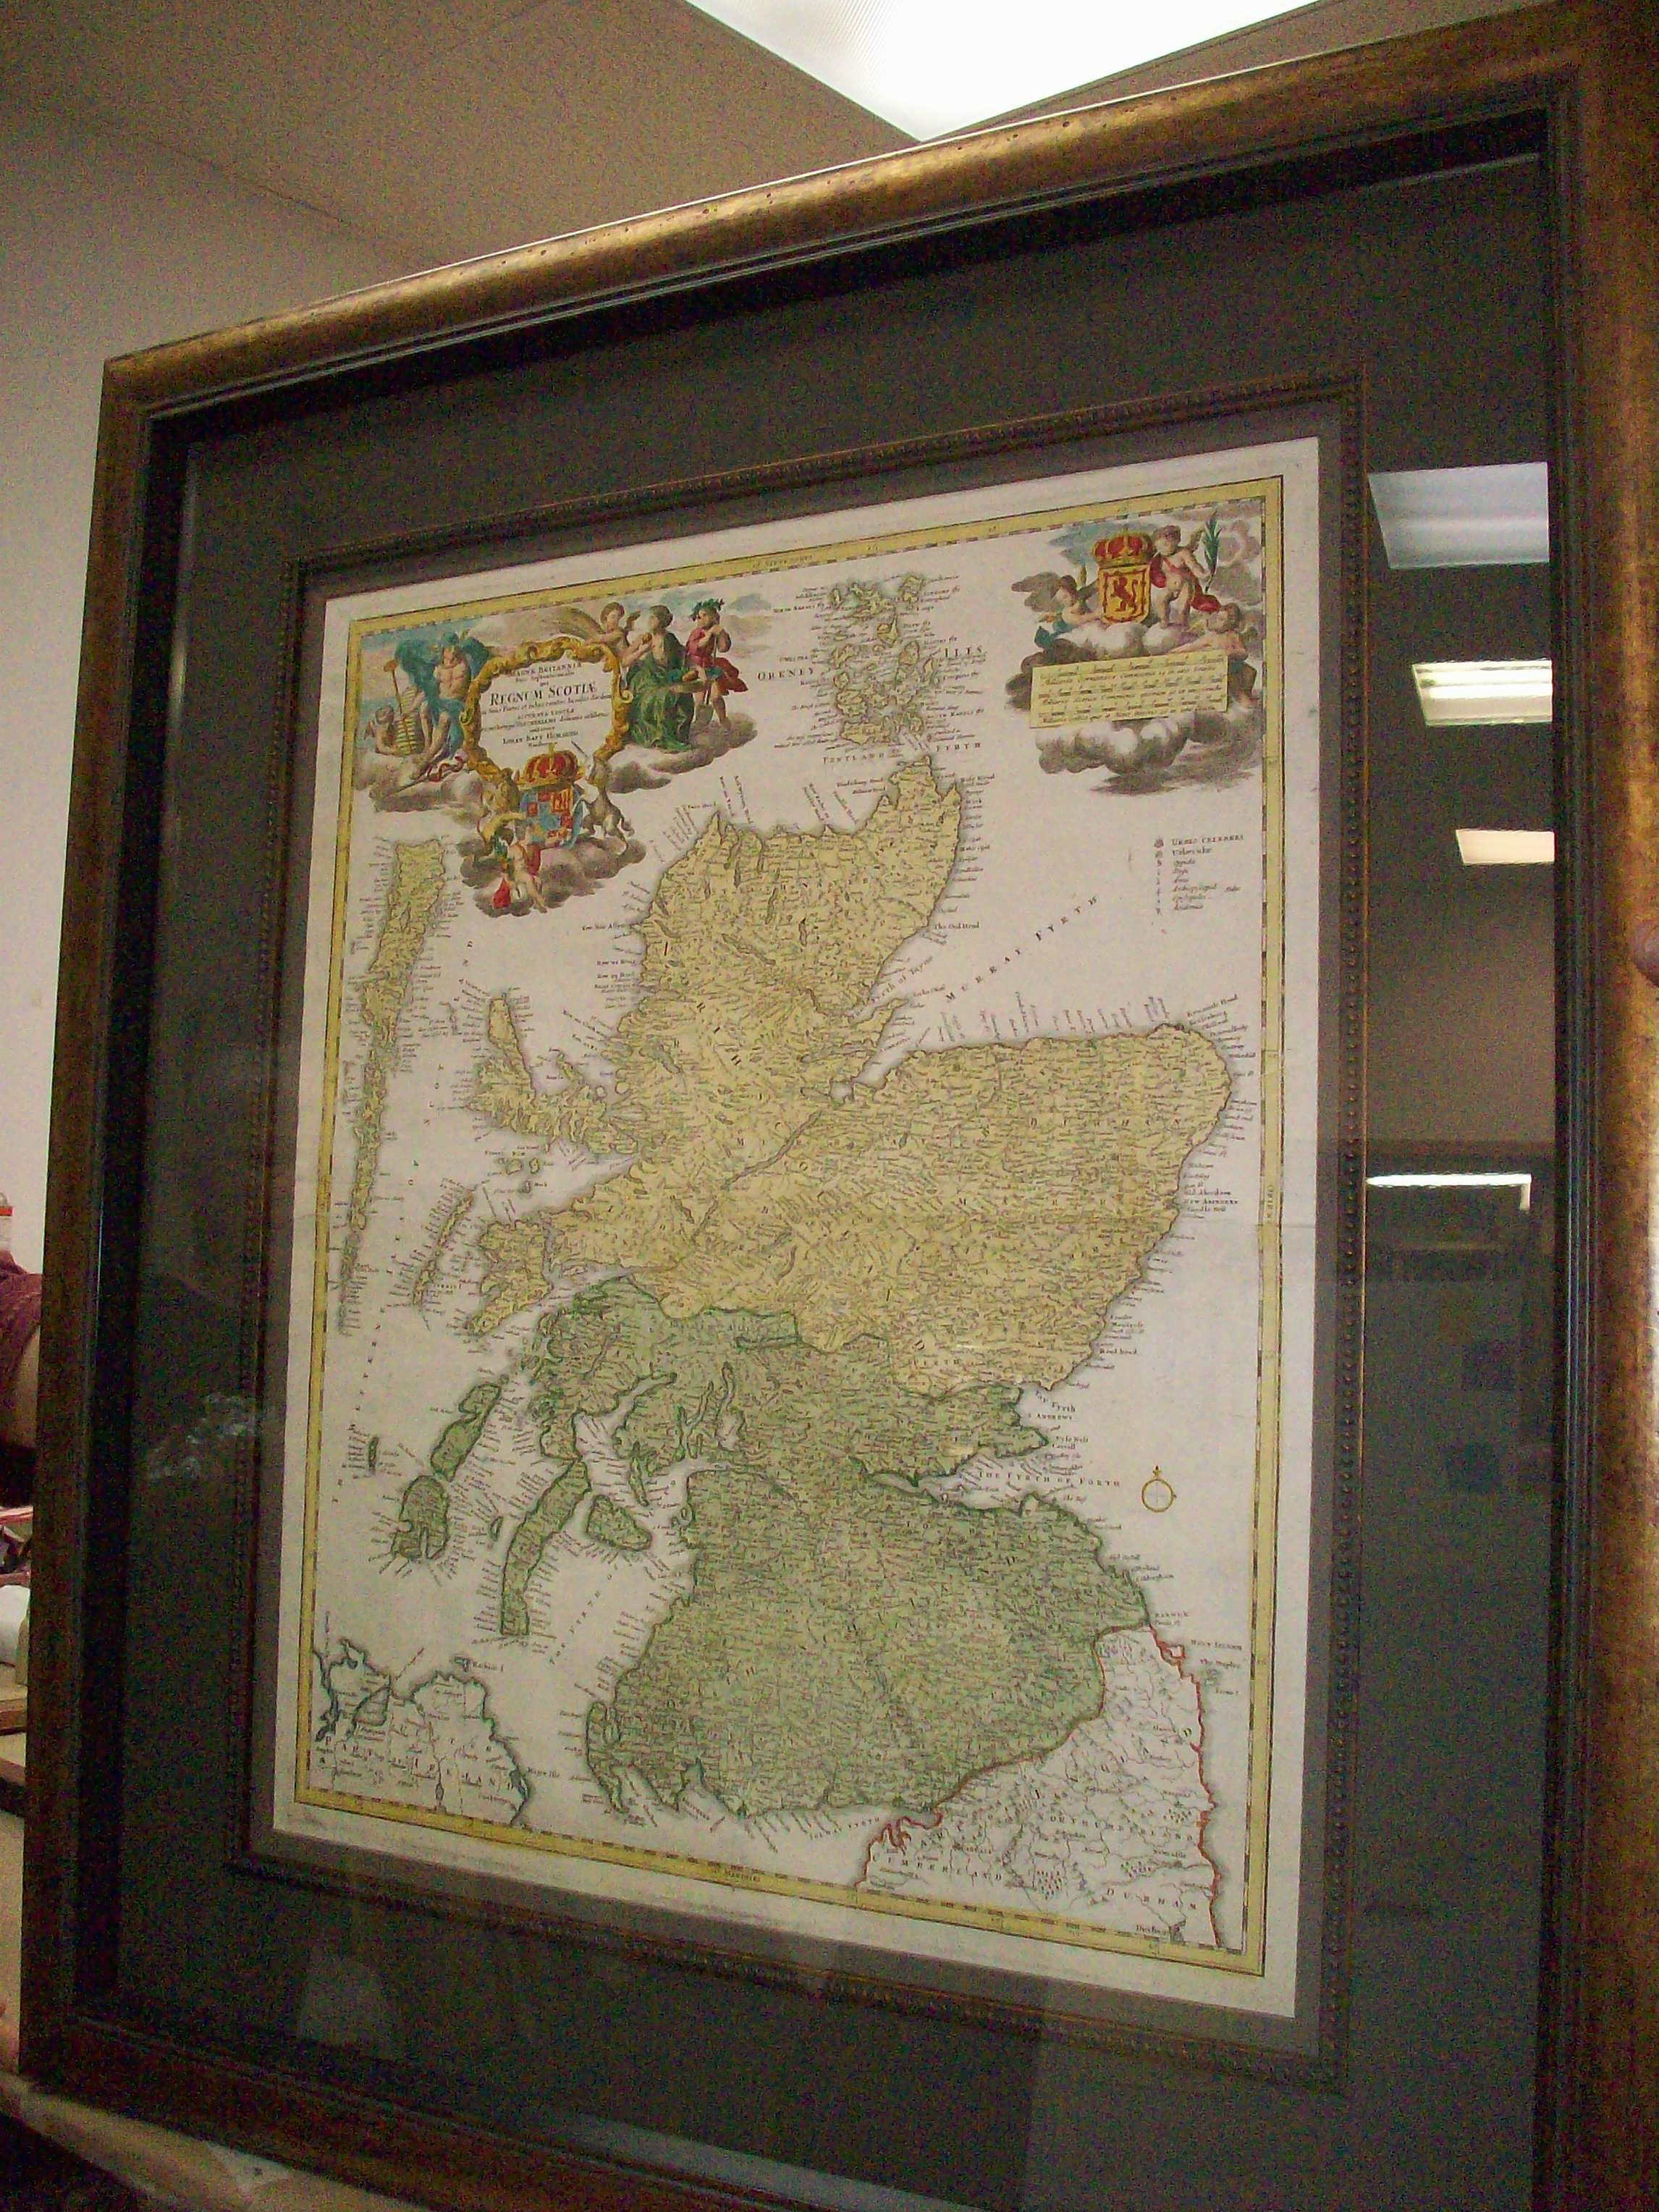 Incredible Framed Ireland Antique Map We Did For One Of Our Favorite Customers Antique Map Frame Custom Framing